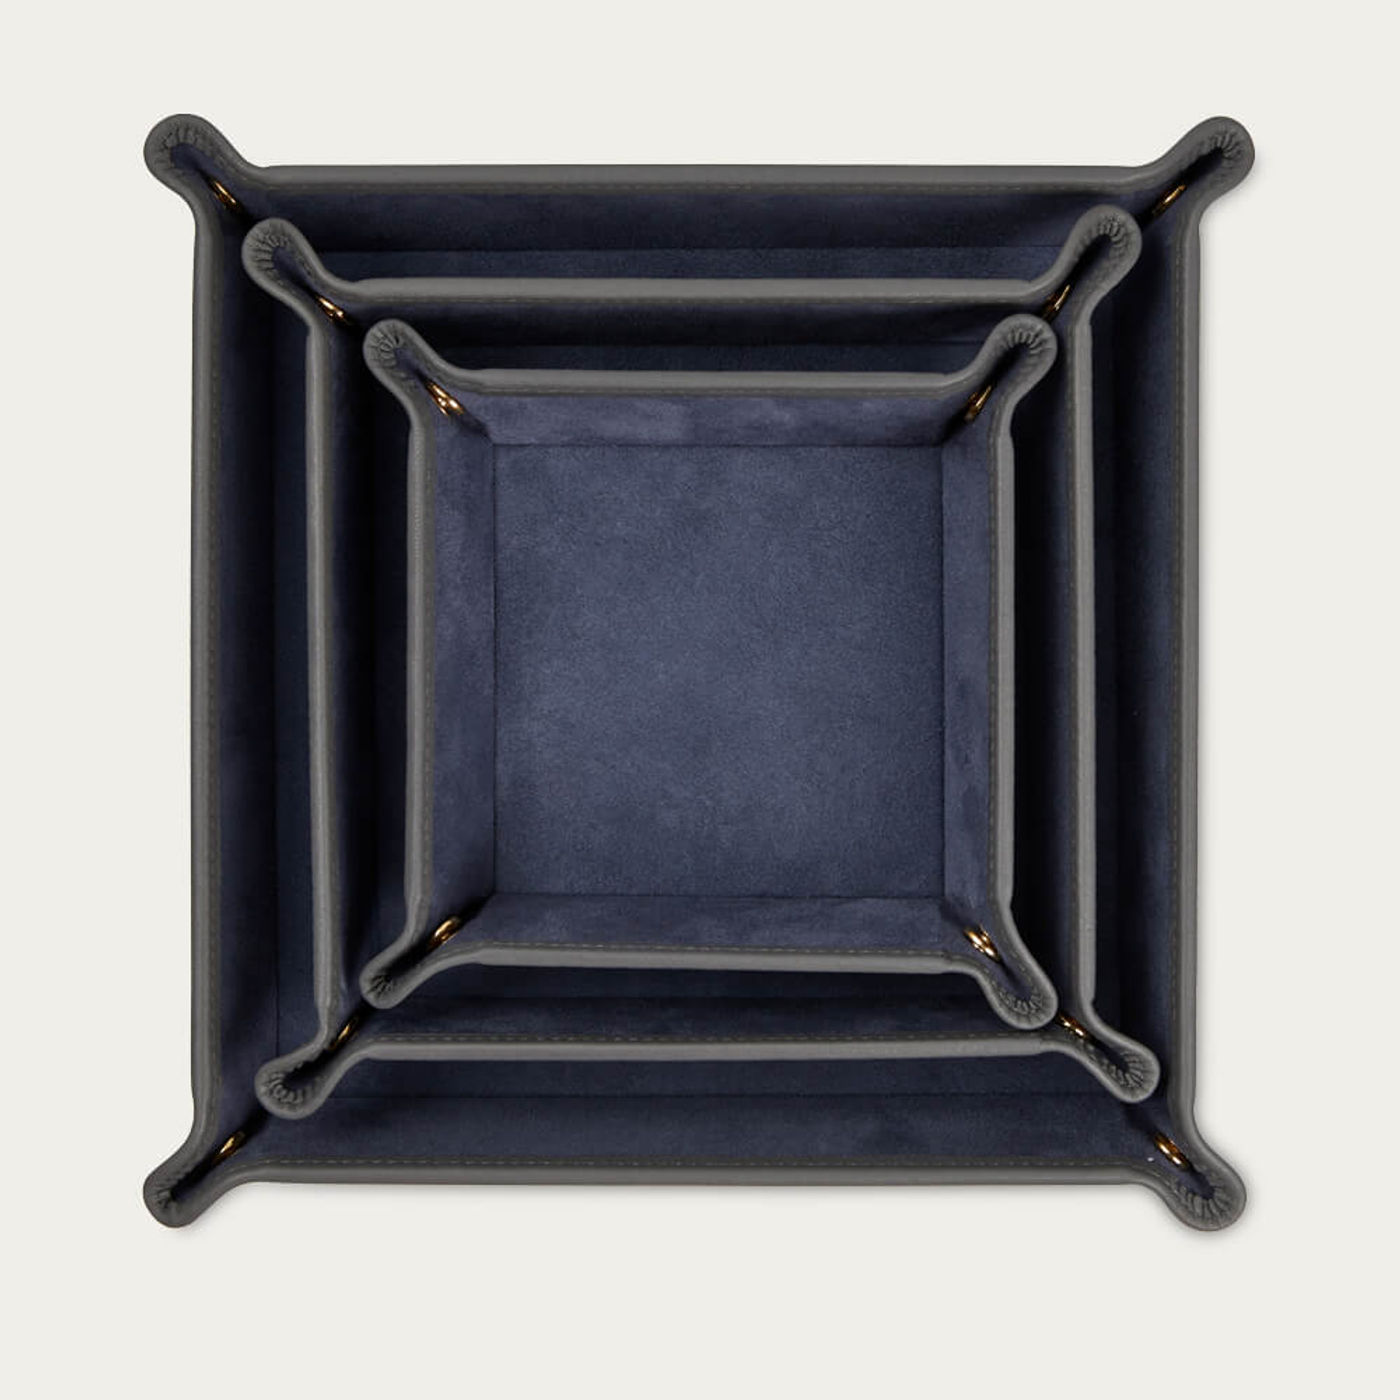 Quiet Shade & Blue Jeans Leather Valet Tray Gift Set | Bombinate